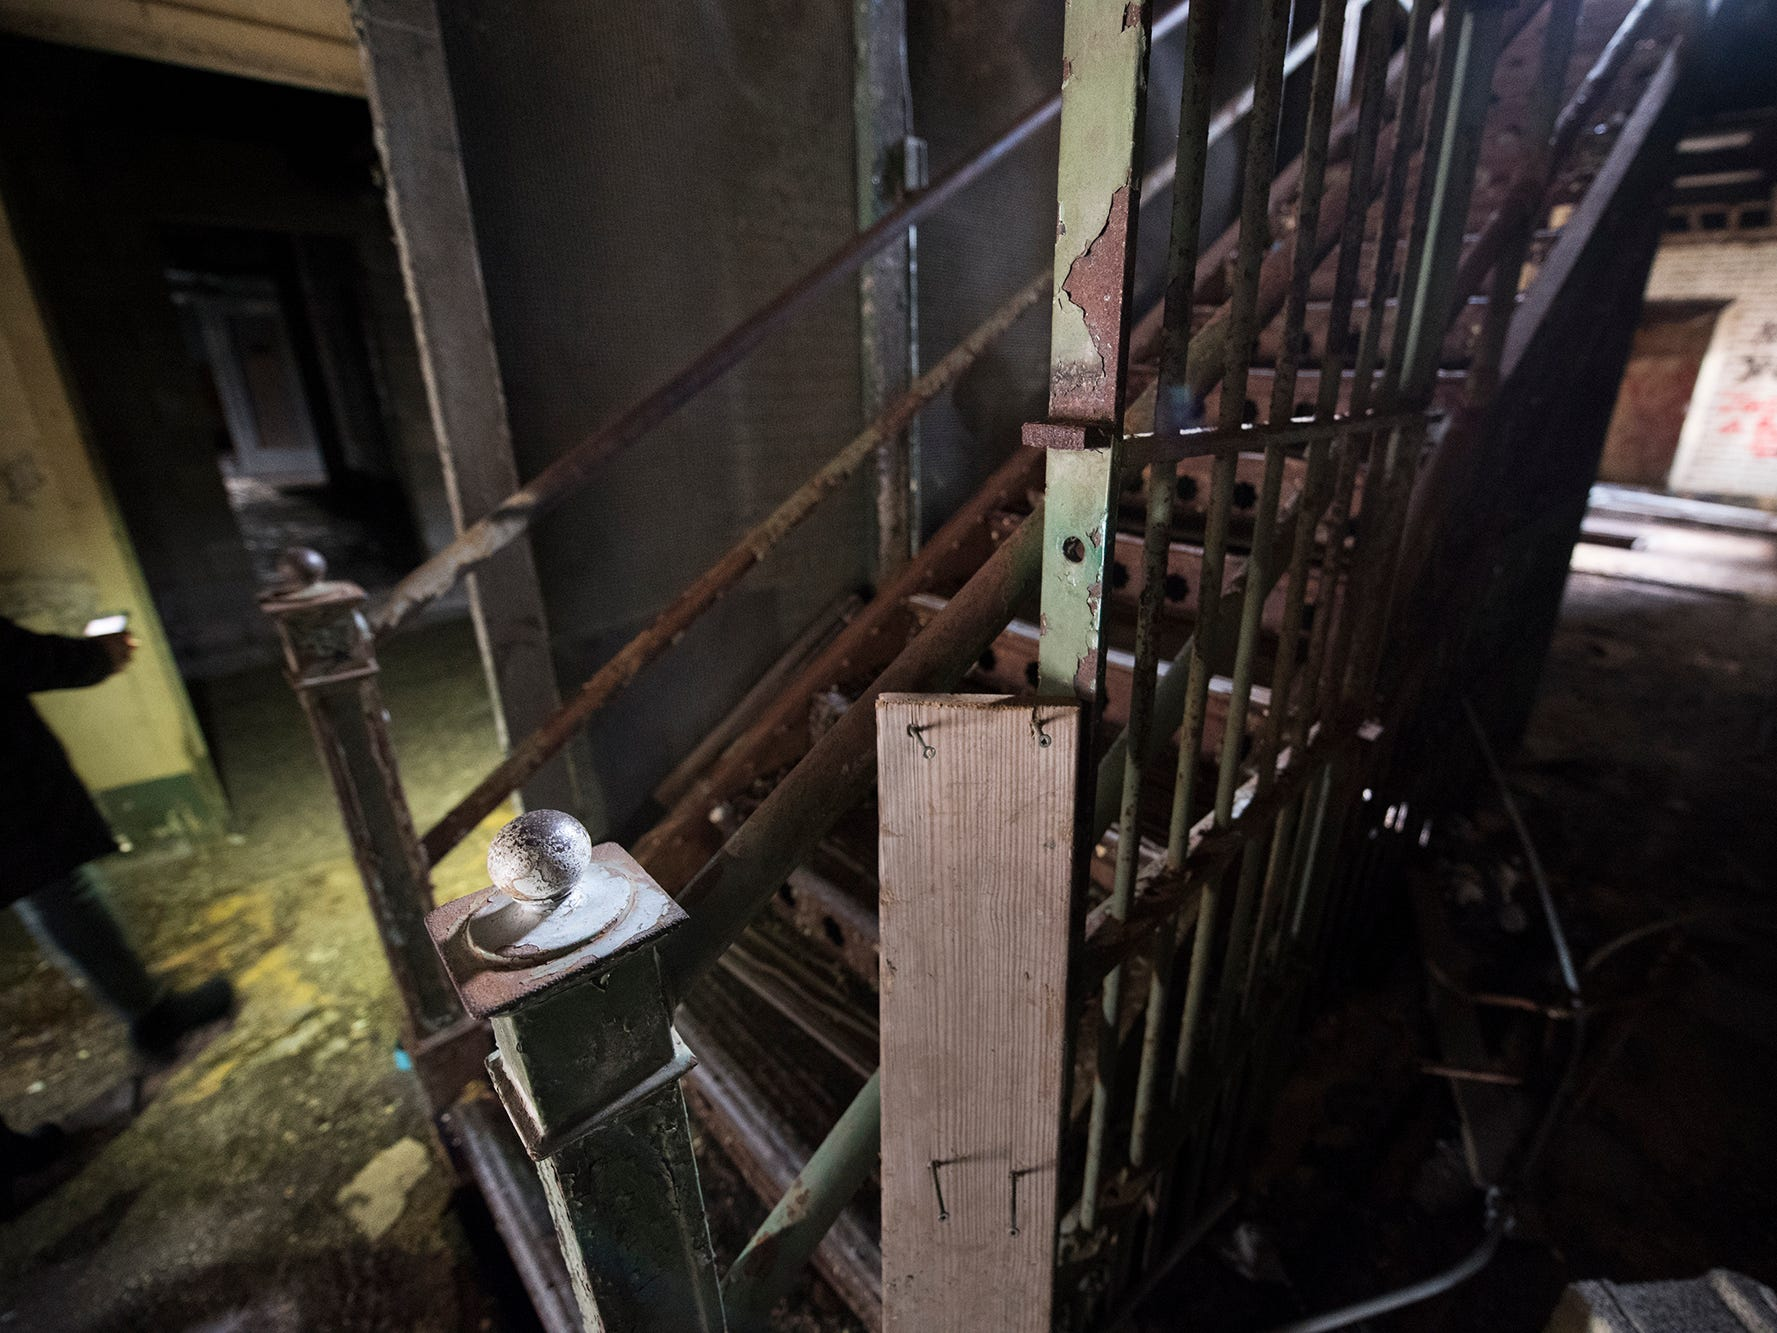 This is the central staircase from inside of the foyer inside the old York County Prison.